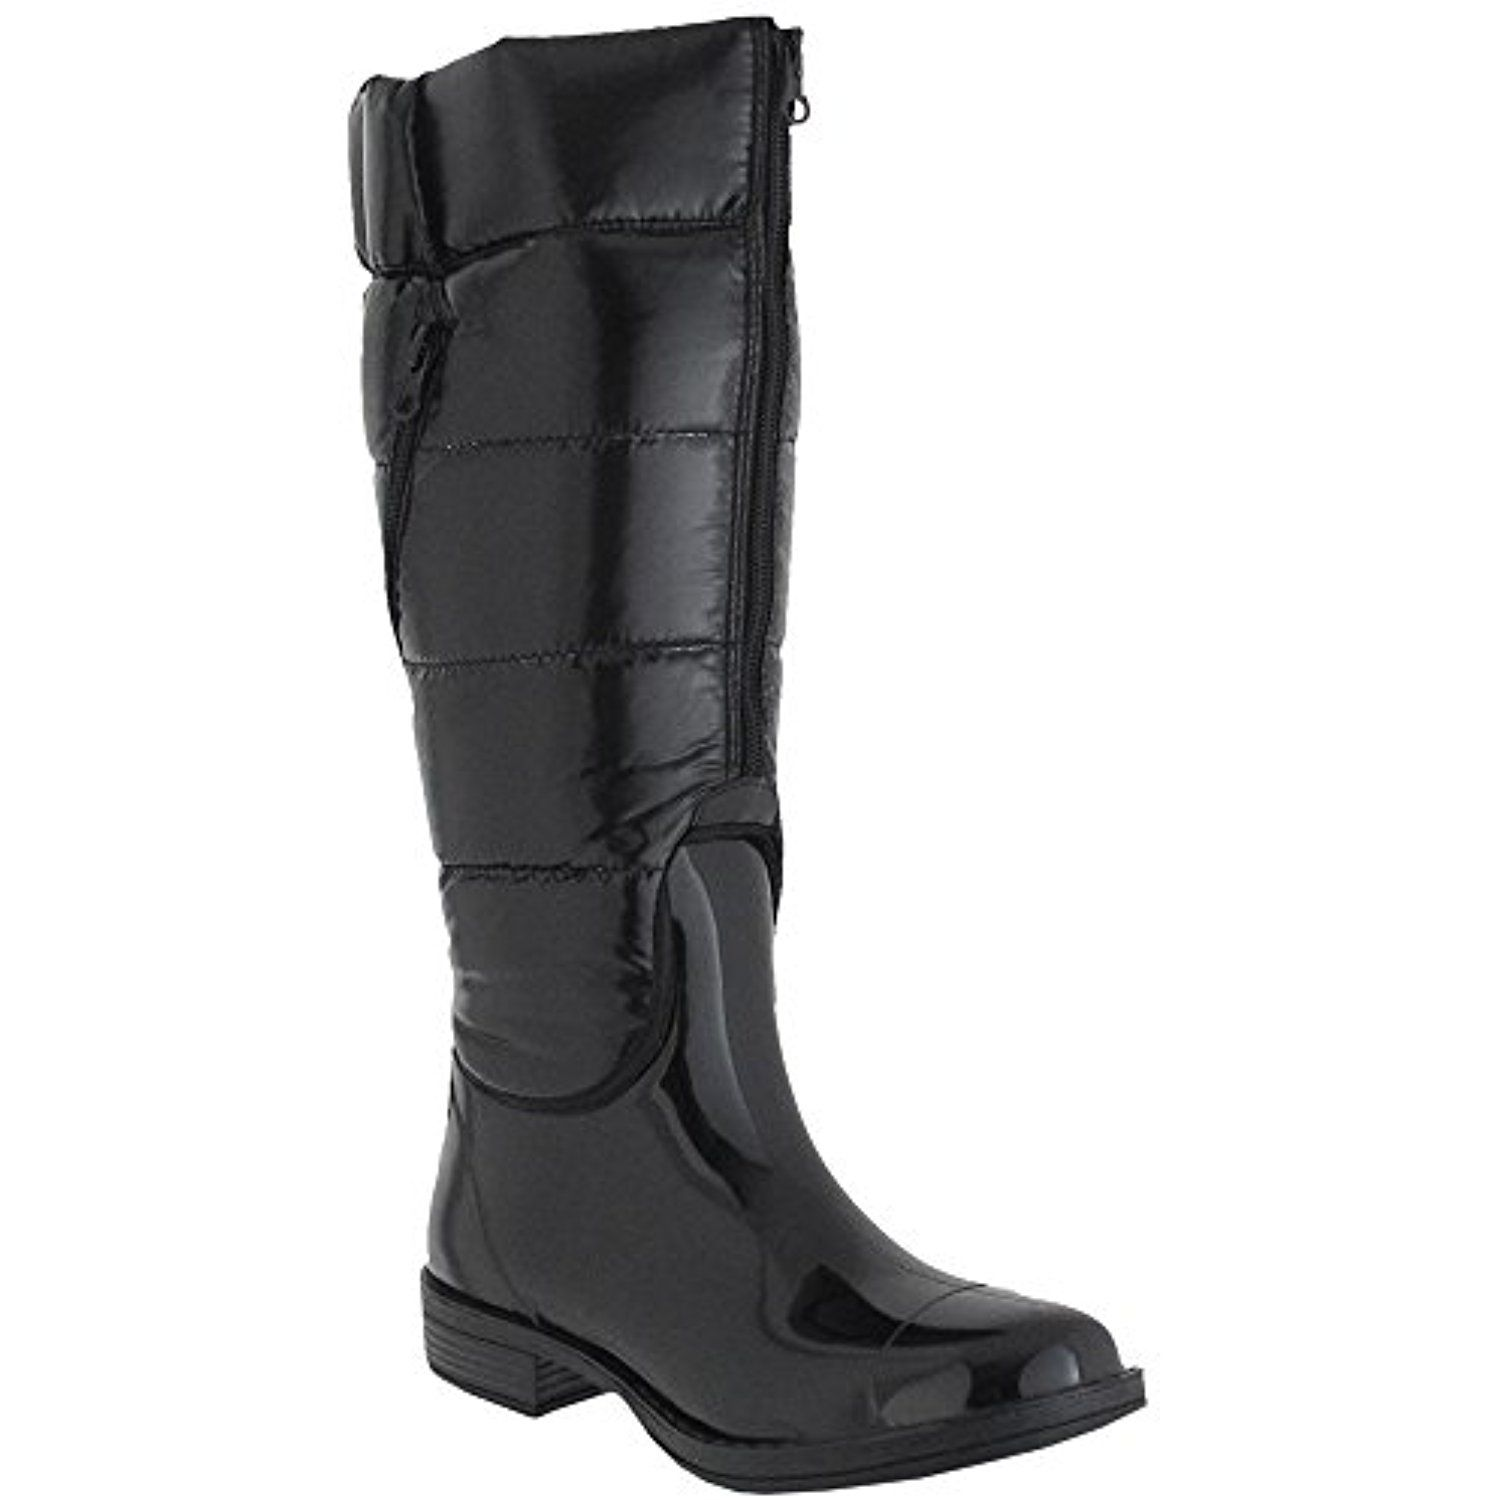 Shiny Nylon Quilted Shaft And Zipper Ladies Tall Saddle Body Rain Boot